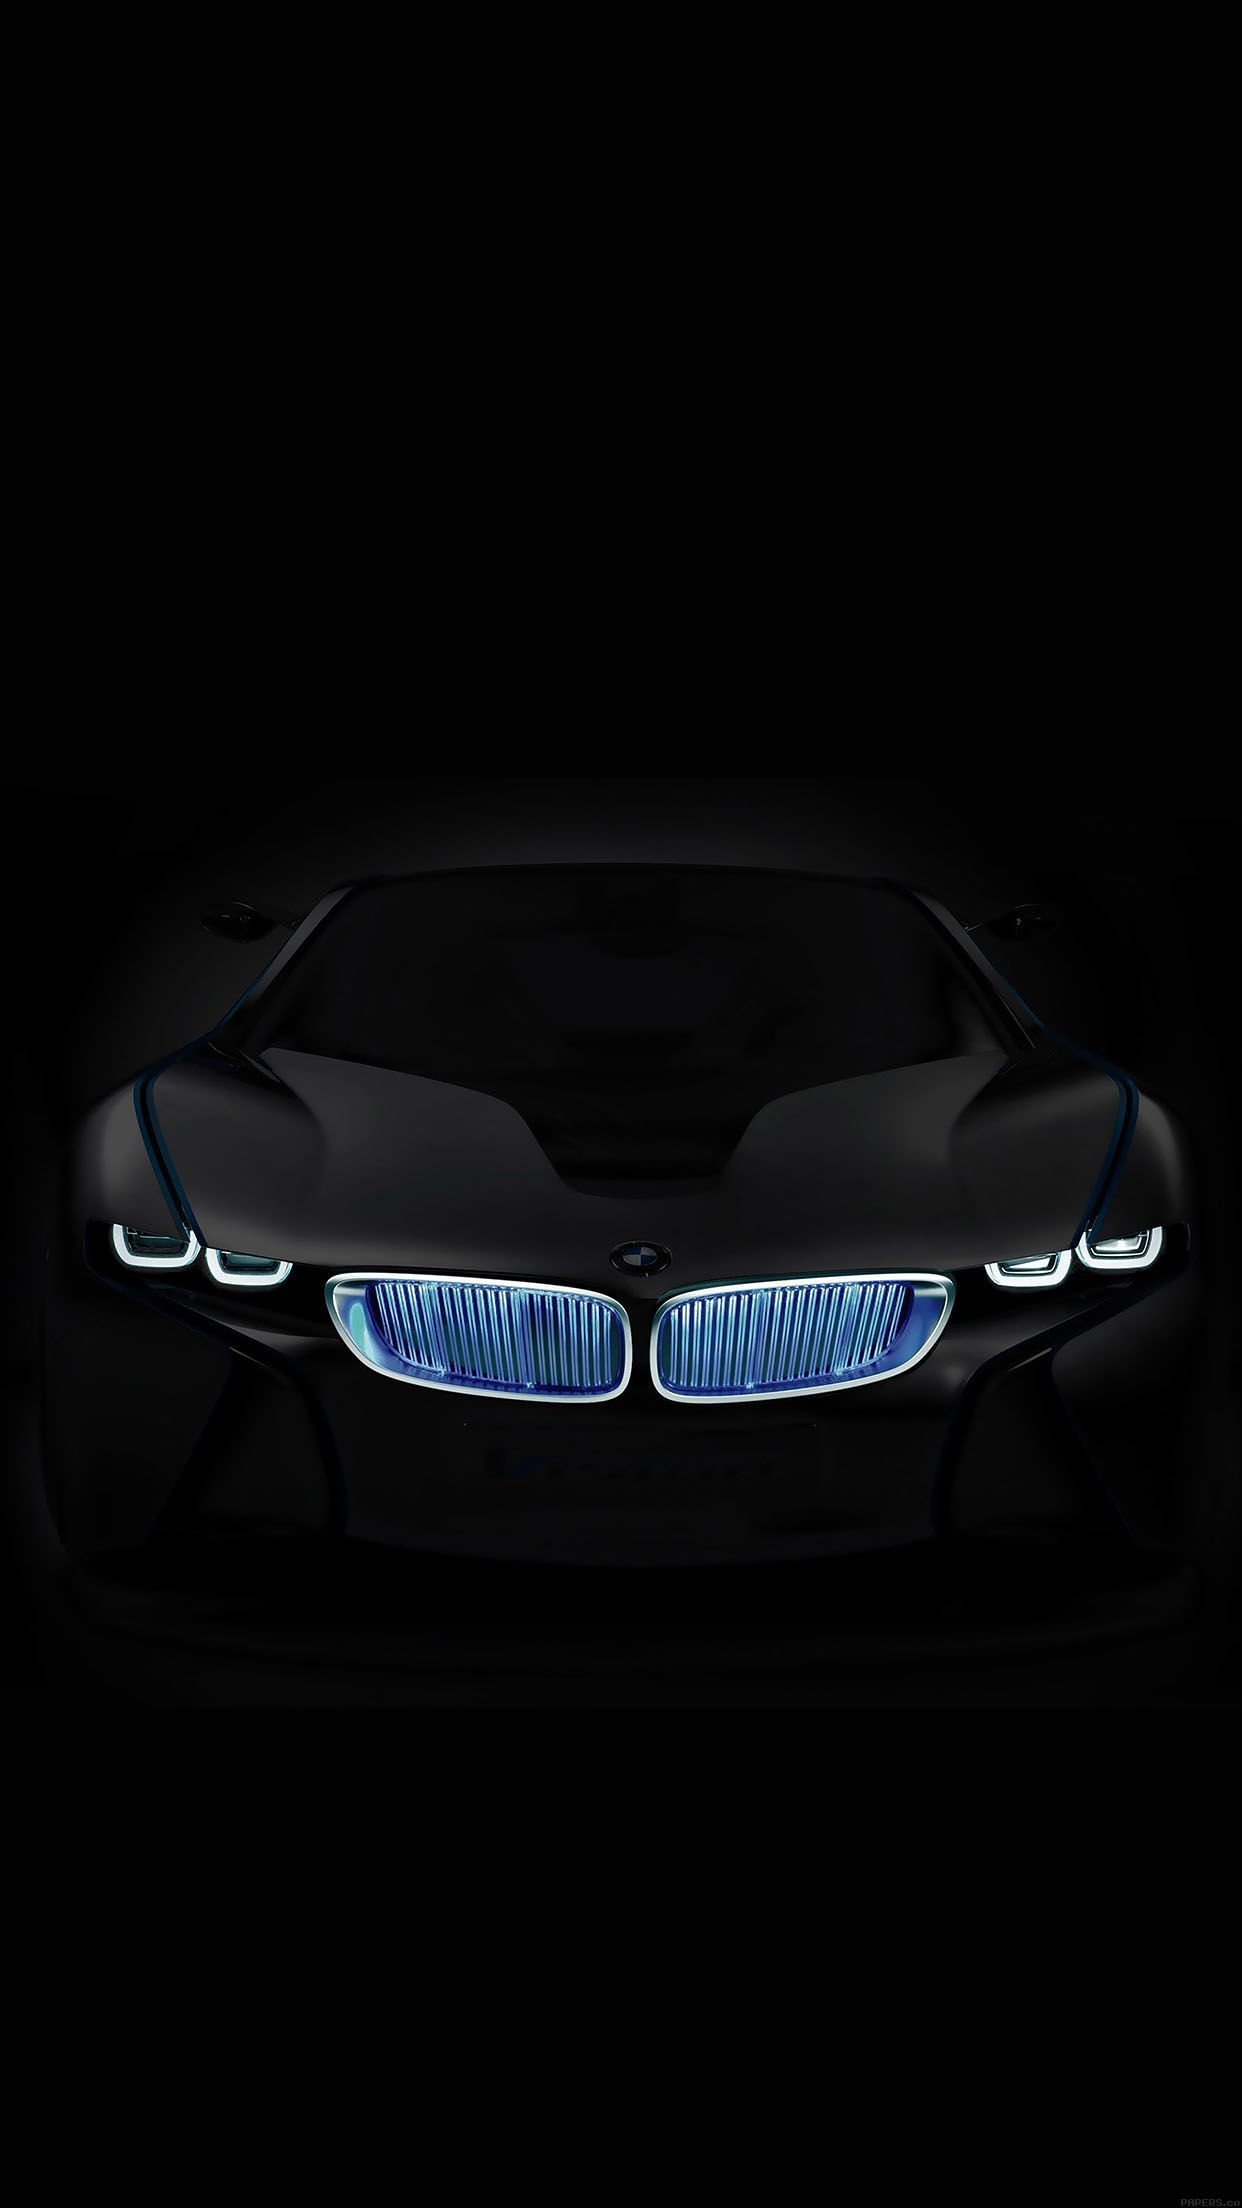 Bmw Iphone Wallpapers Top Free Bmw Iphone Backgrounds